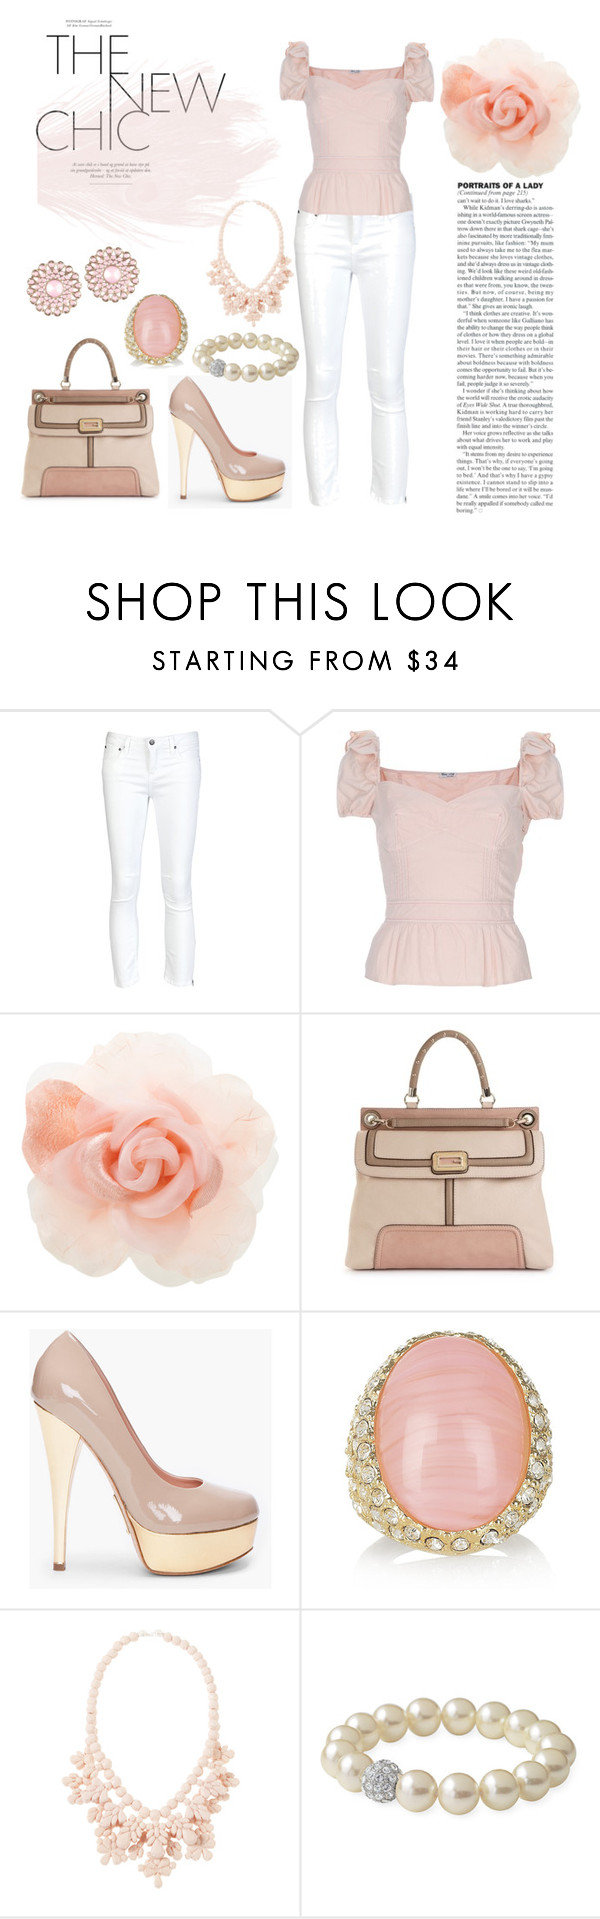 """""""Pastel"""" by koniikonii ❤ liked on Polyvore featuring Helmut Lang, Miu Miu, Warehouse, GUESS, Alejandro Ingelmo, Kenneth Jay Lane, Stella & Dot and ALDO"""